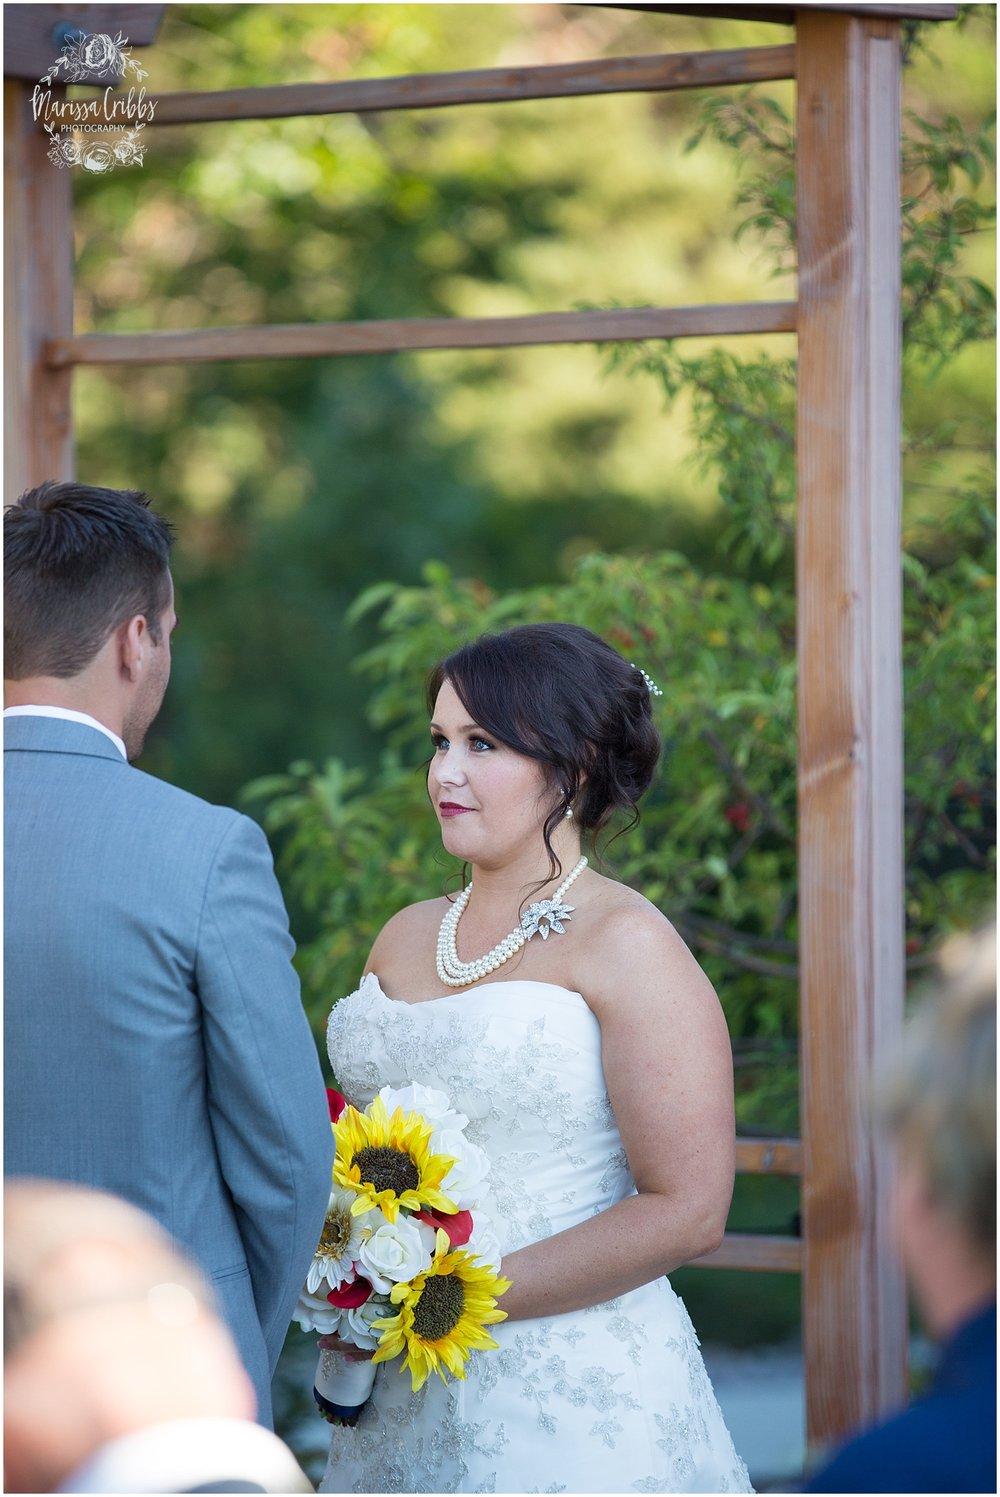 Sarah & Troy | Wichita KS Wedding Photography | Noah's Event Venue Wichita | Marissa Cribbs Photography_1000.jpg